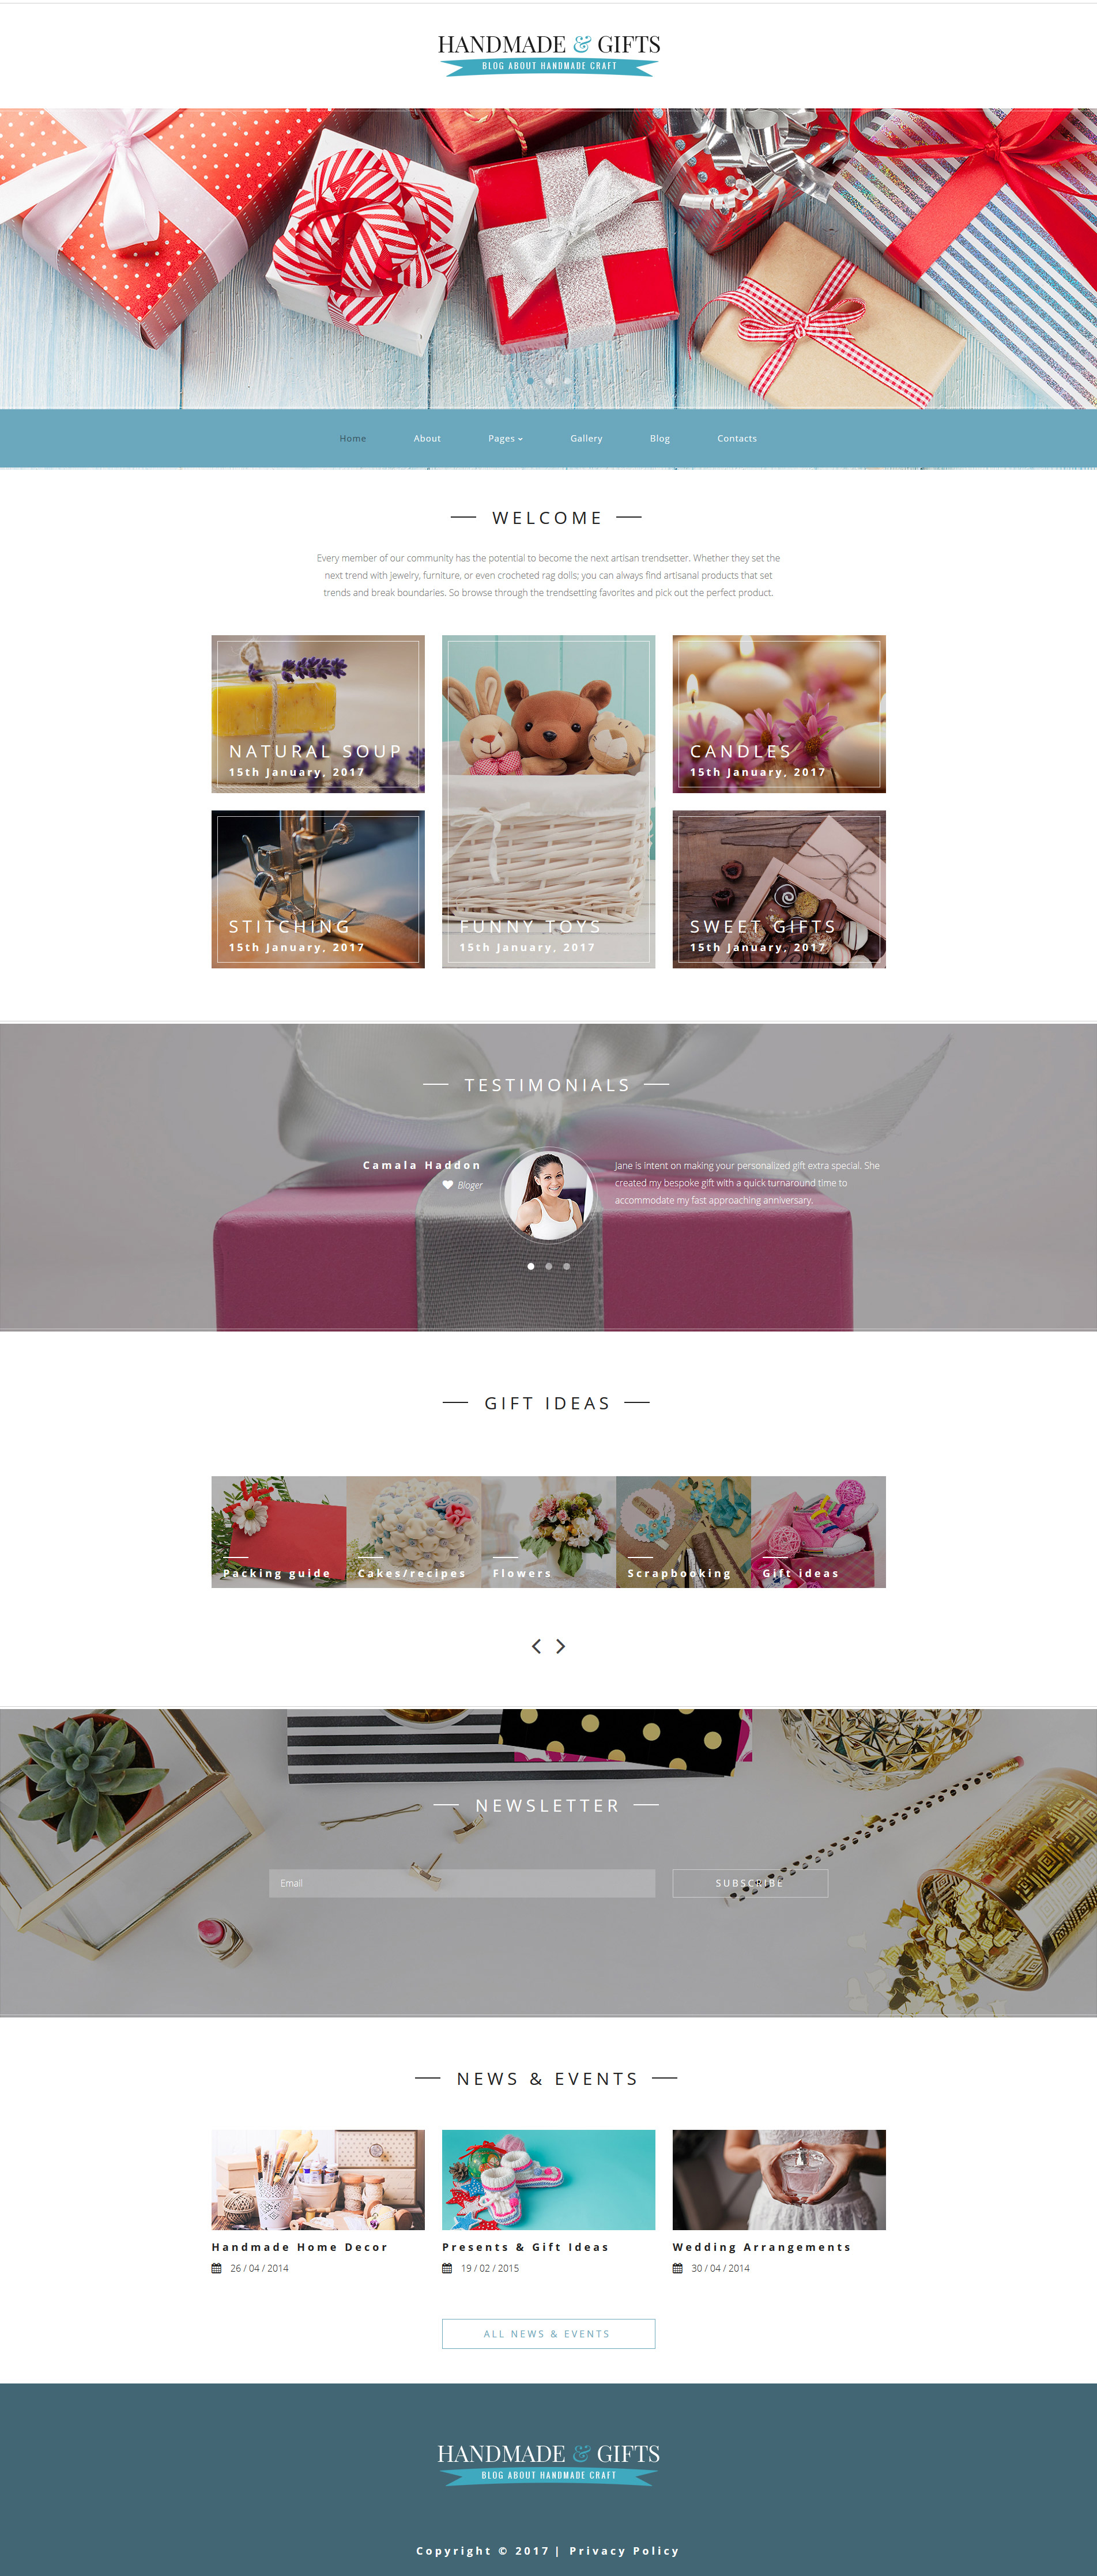 Handmade & Gifts - Crafts Blog and Gift Store Joomla Template - screenshot